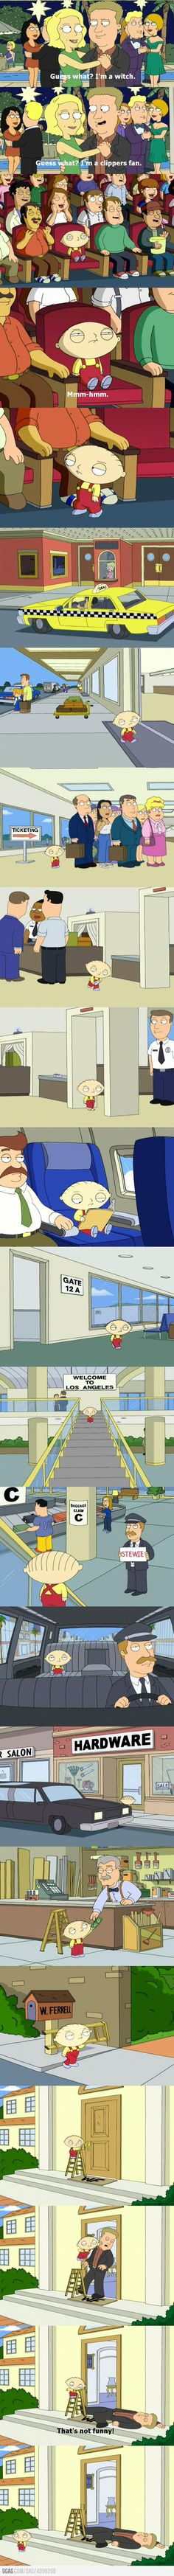 Just Stewie being awesome.